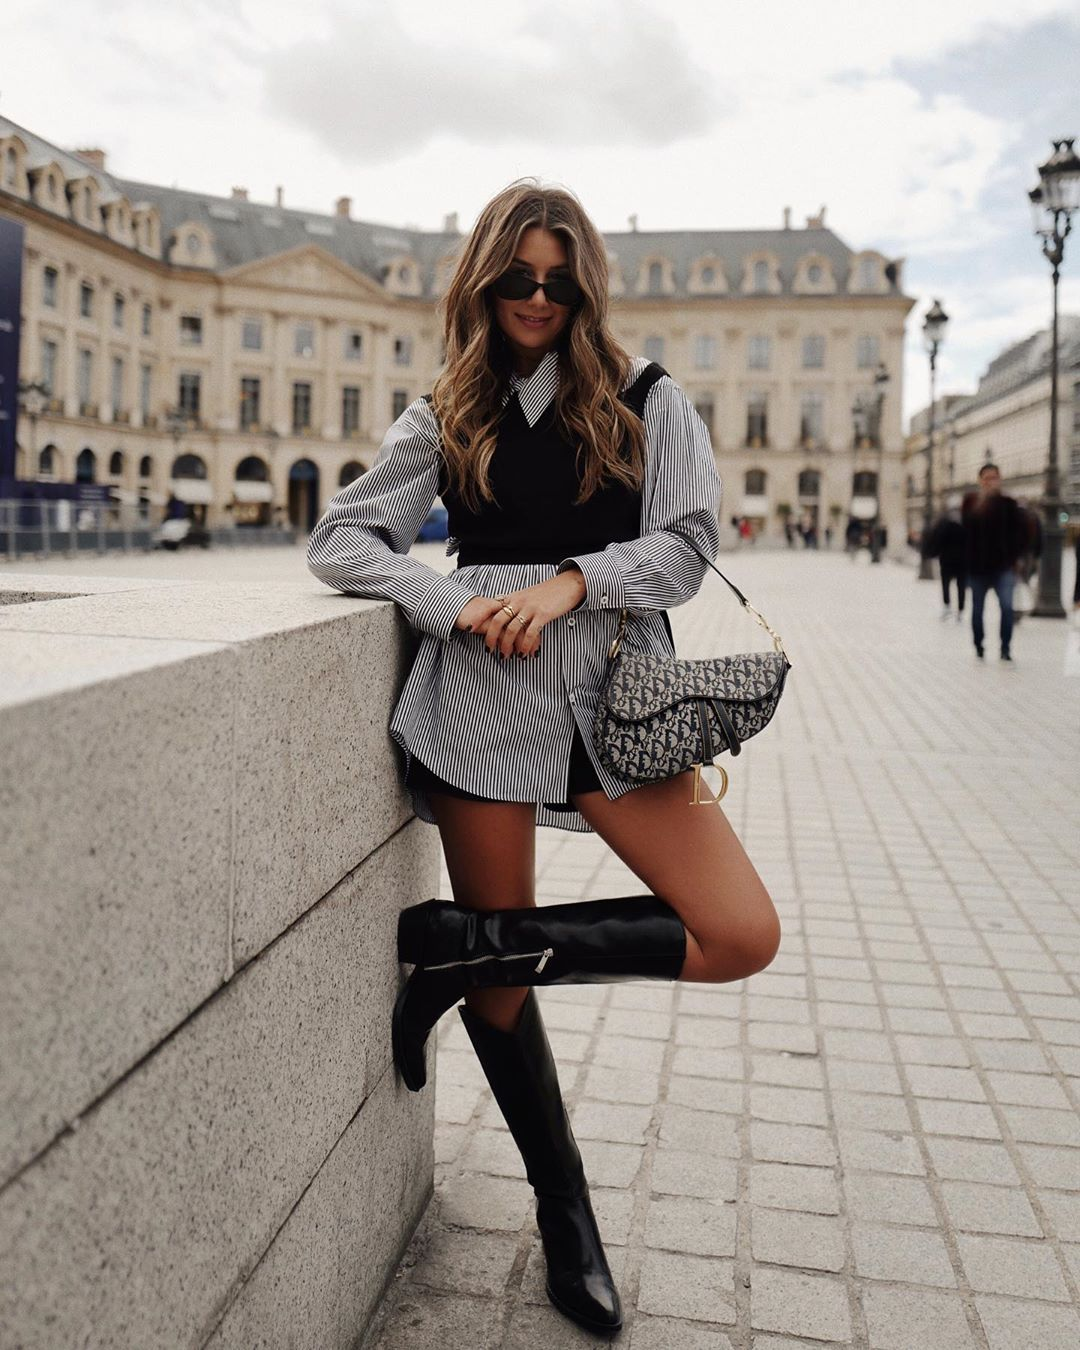 Paris Fashion Week: The transcendental street style looks